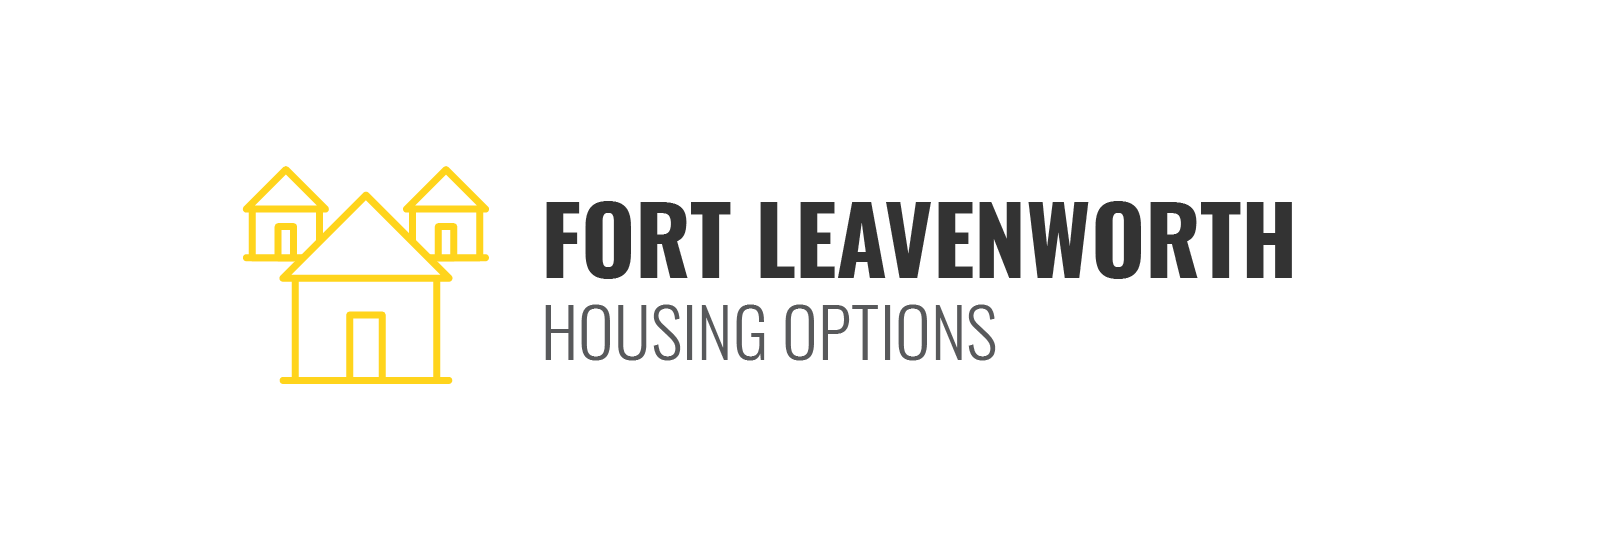 Fort Leavenworth Housing Options